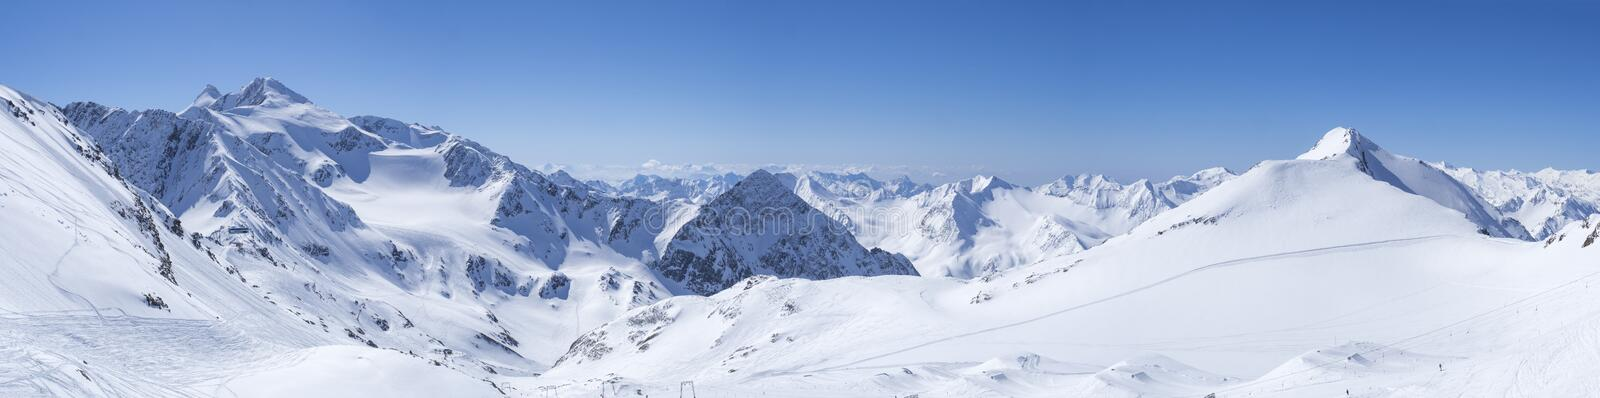 Panoramic landscape view from top of Schaufelspitze on winter landscape with snow covered mountain slopes and pistes at stock image